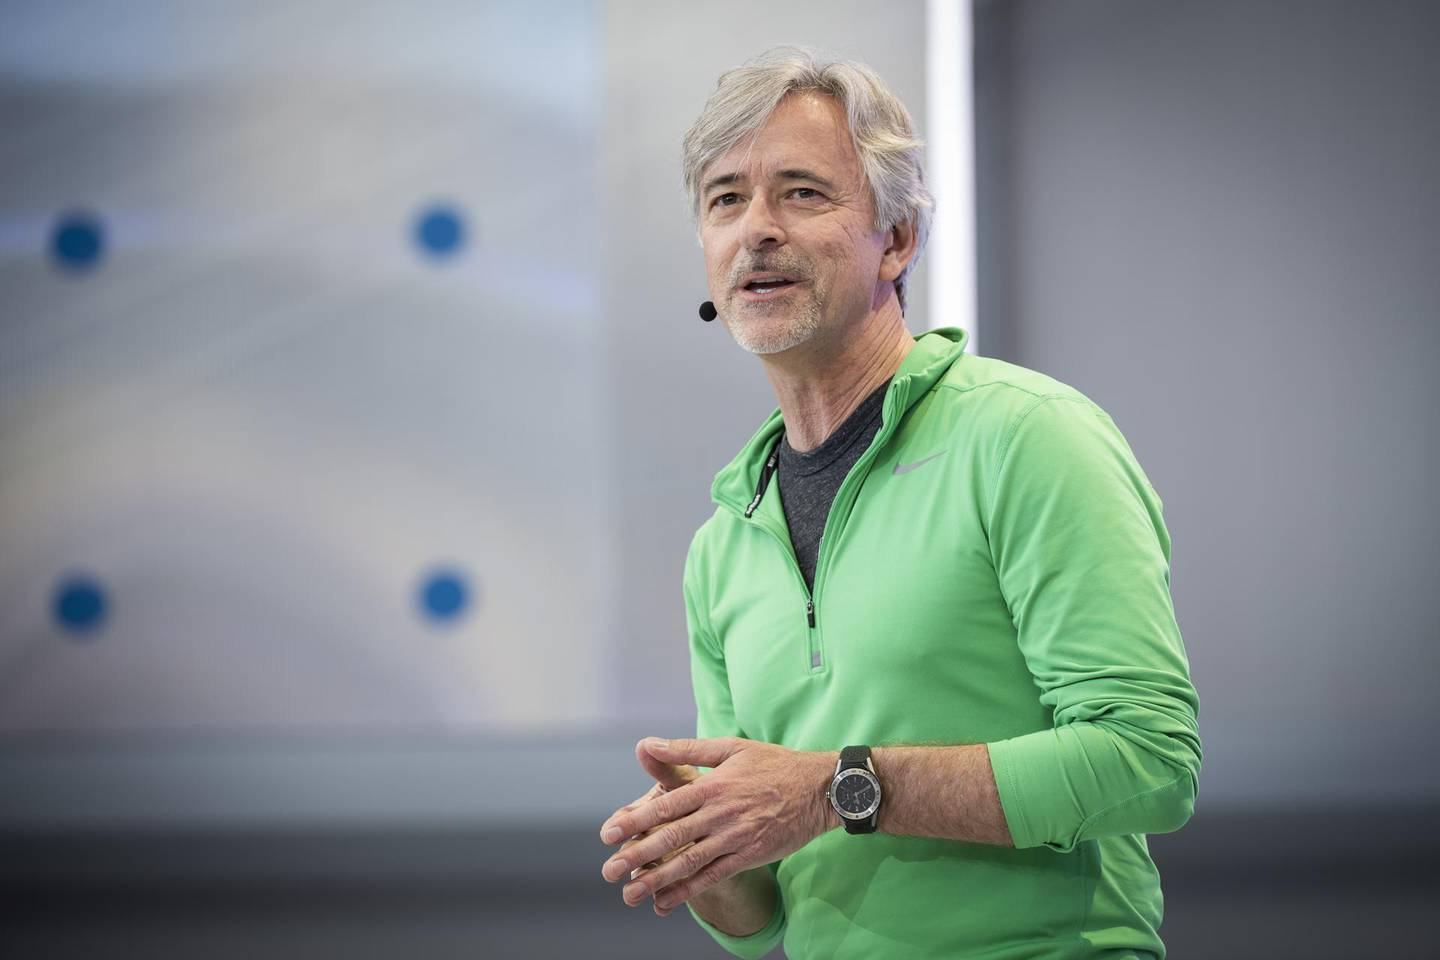 John Krafcik, chief executive officer of Waymo LLC, speaks during the Google I/O Developers Conference in Mountain View, California, U.S., on Tuesday, May 8, 2018. The pitch at this year's Alphabet Inc. Google event will look beyond smartphones to focus on the company's cloud-computing, mapping and artificial intelligence software, according to the program's itinerary and a person familiar with the plans. Photographer: David Paul Morris/Bloomberg